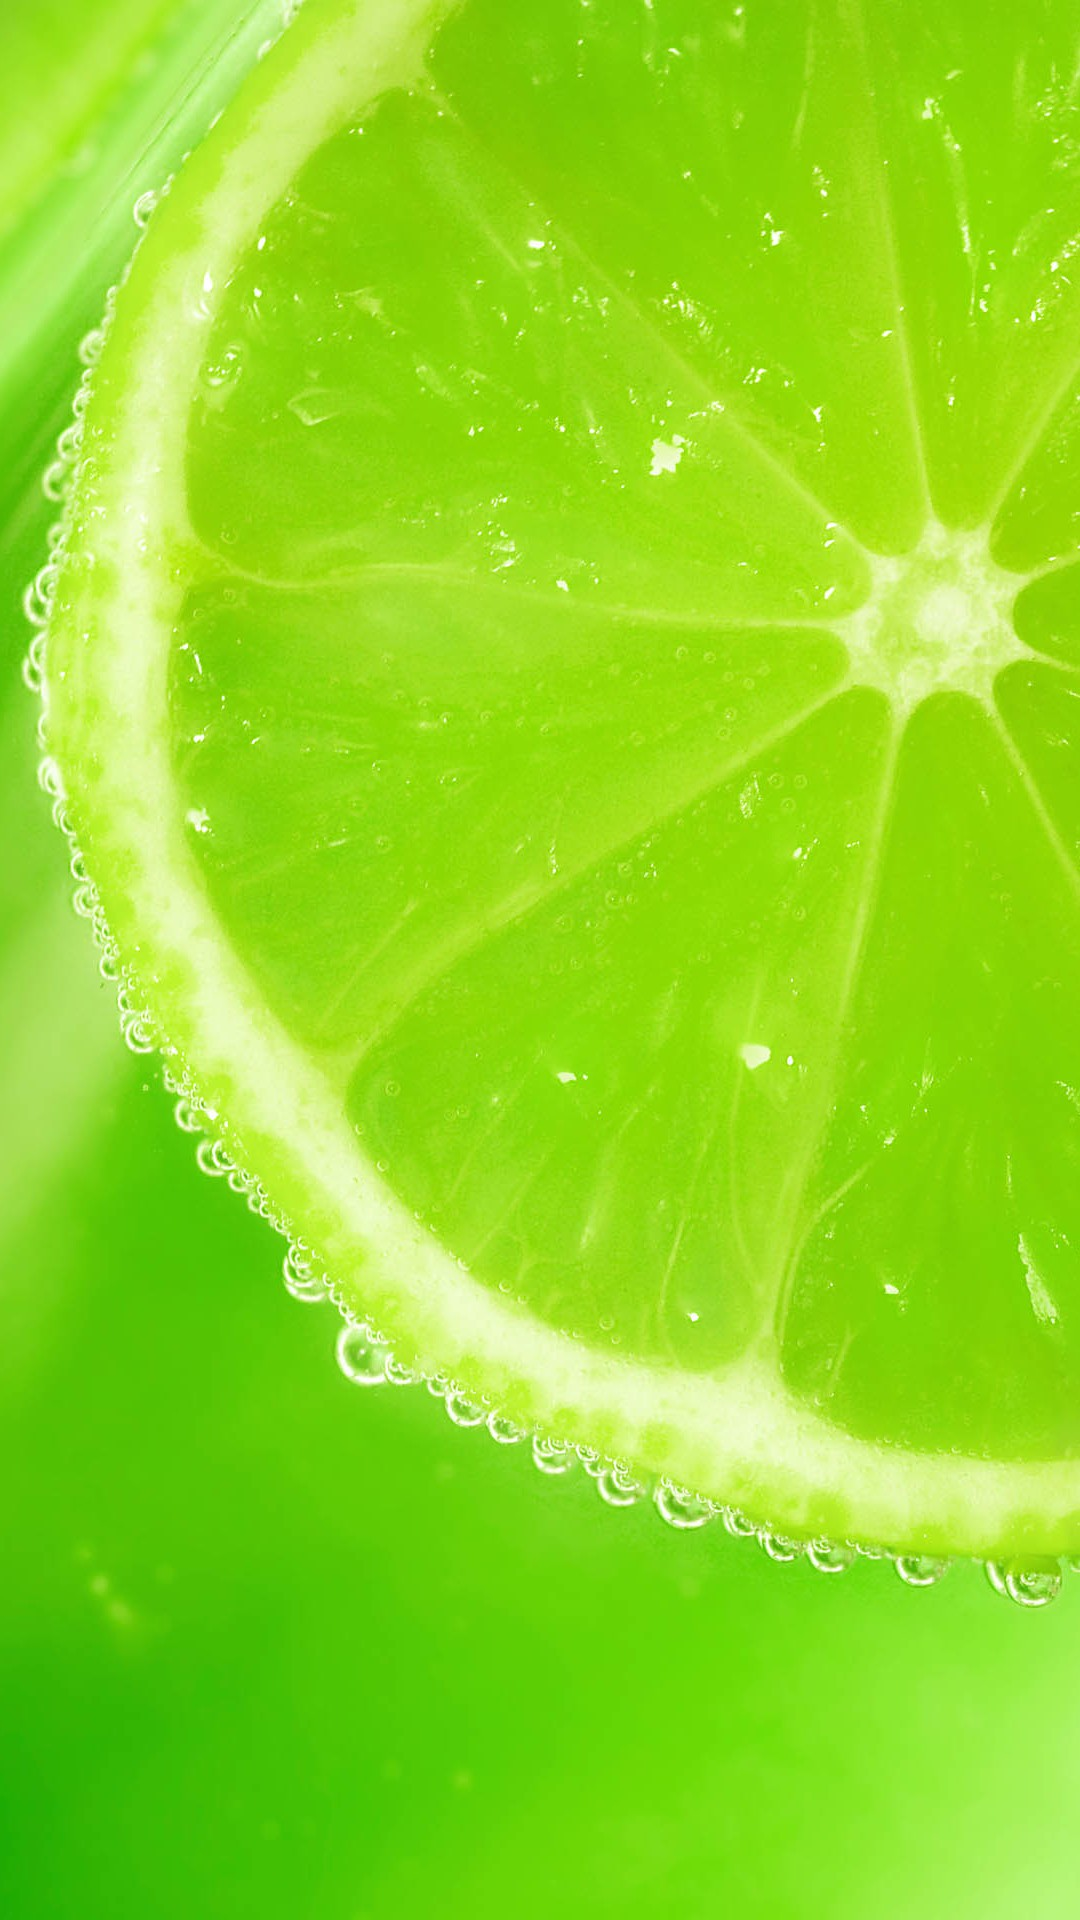 Lemon H5 Green Background Small Fresh Image For Free Download